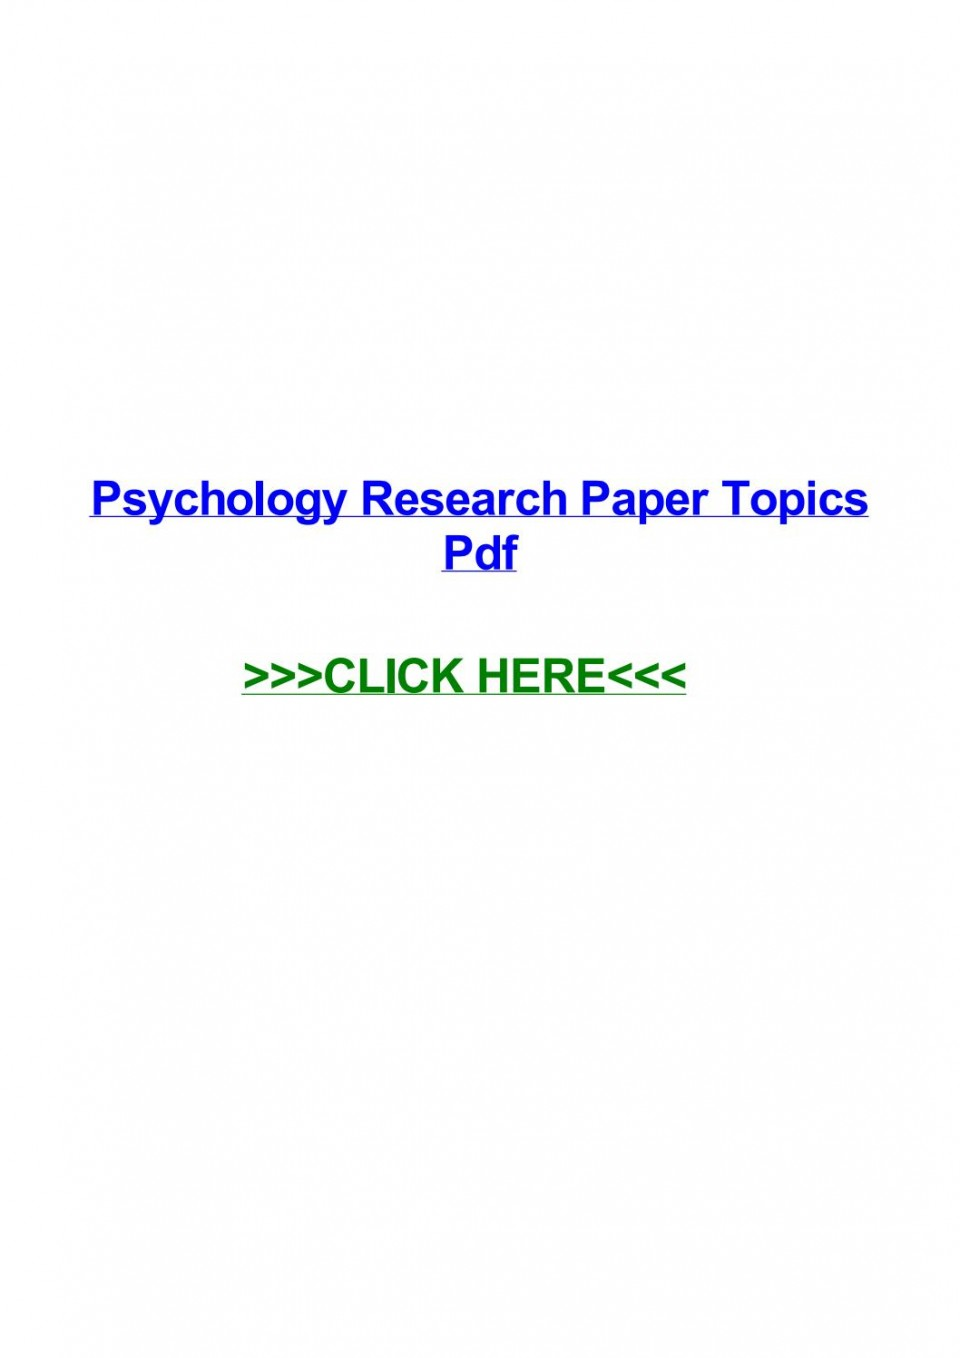 017 Page 1 Research Paper Psychology Striking Topics For High School Students Reddit 960